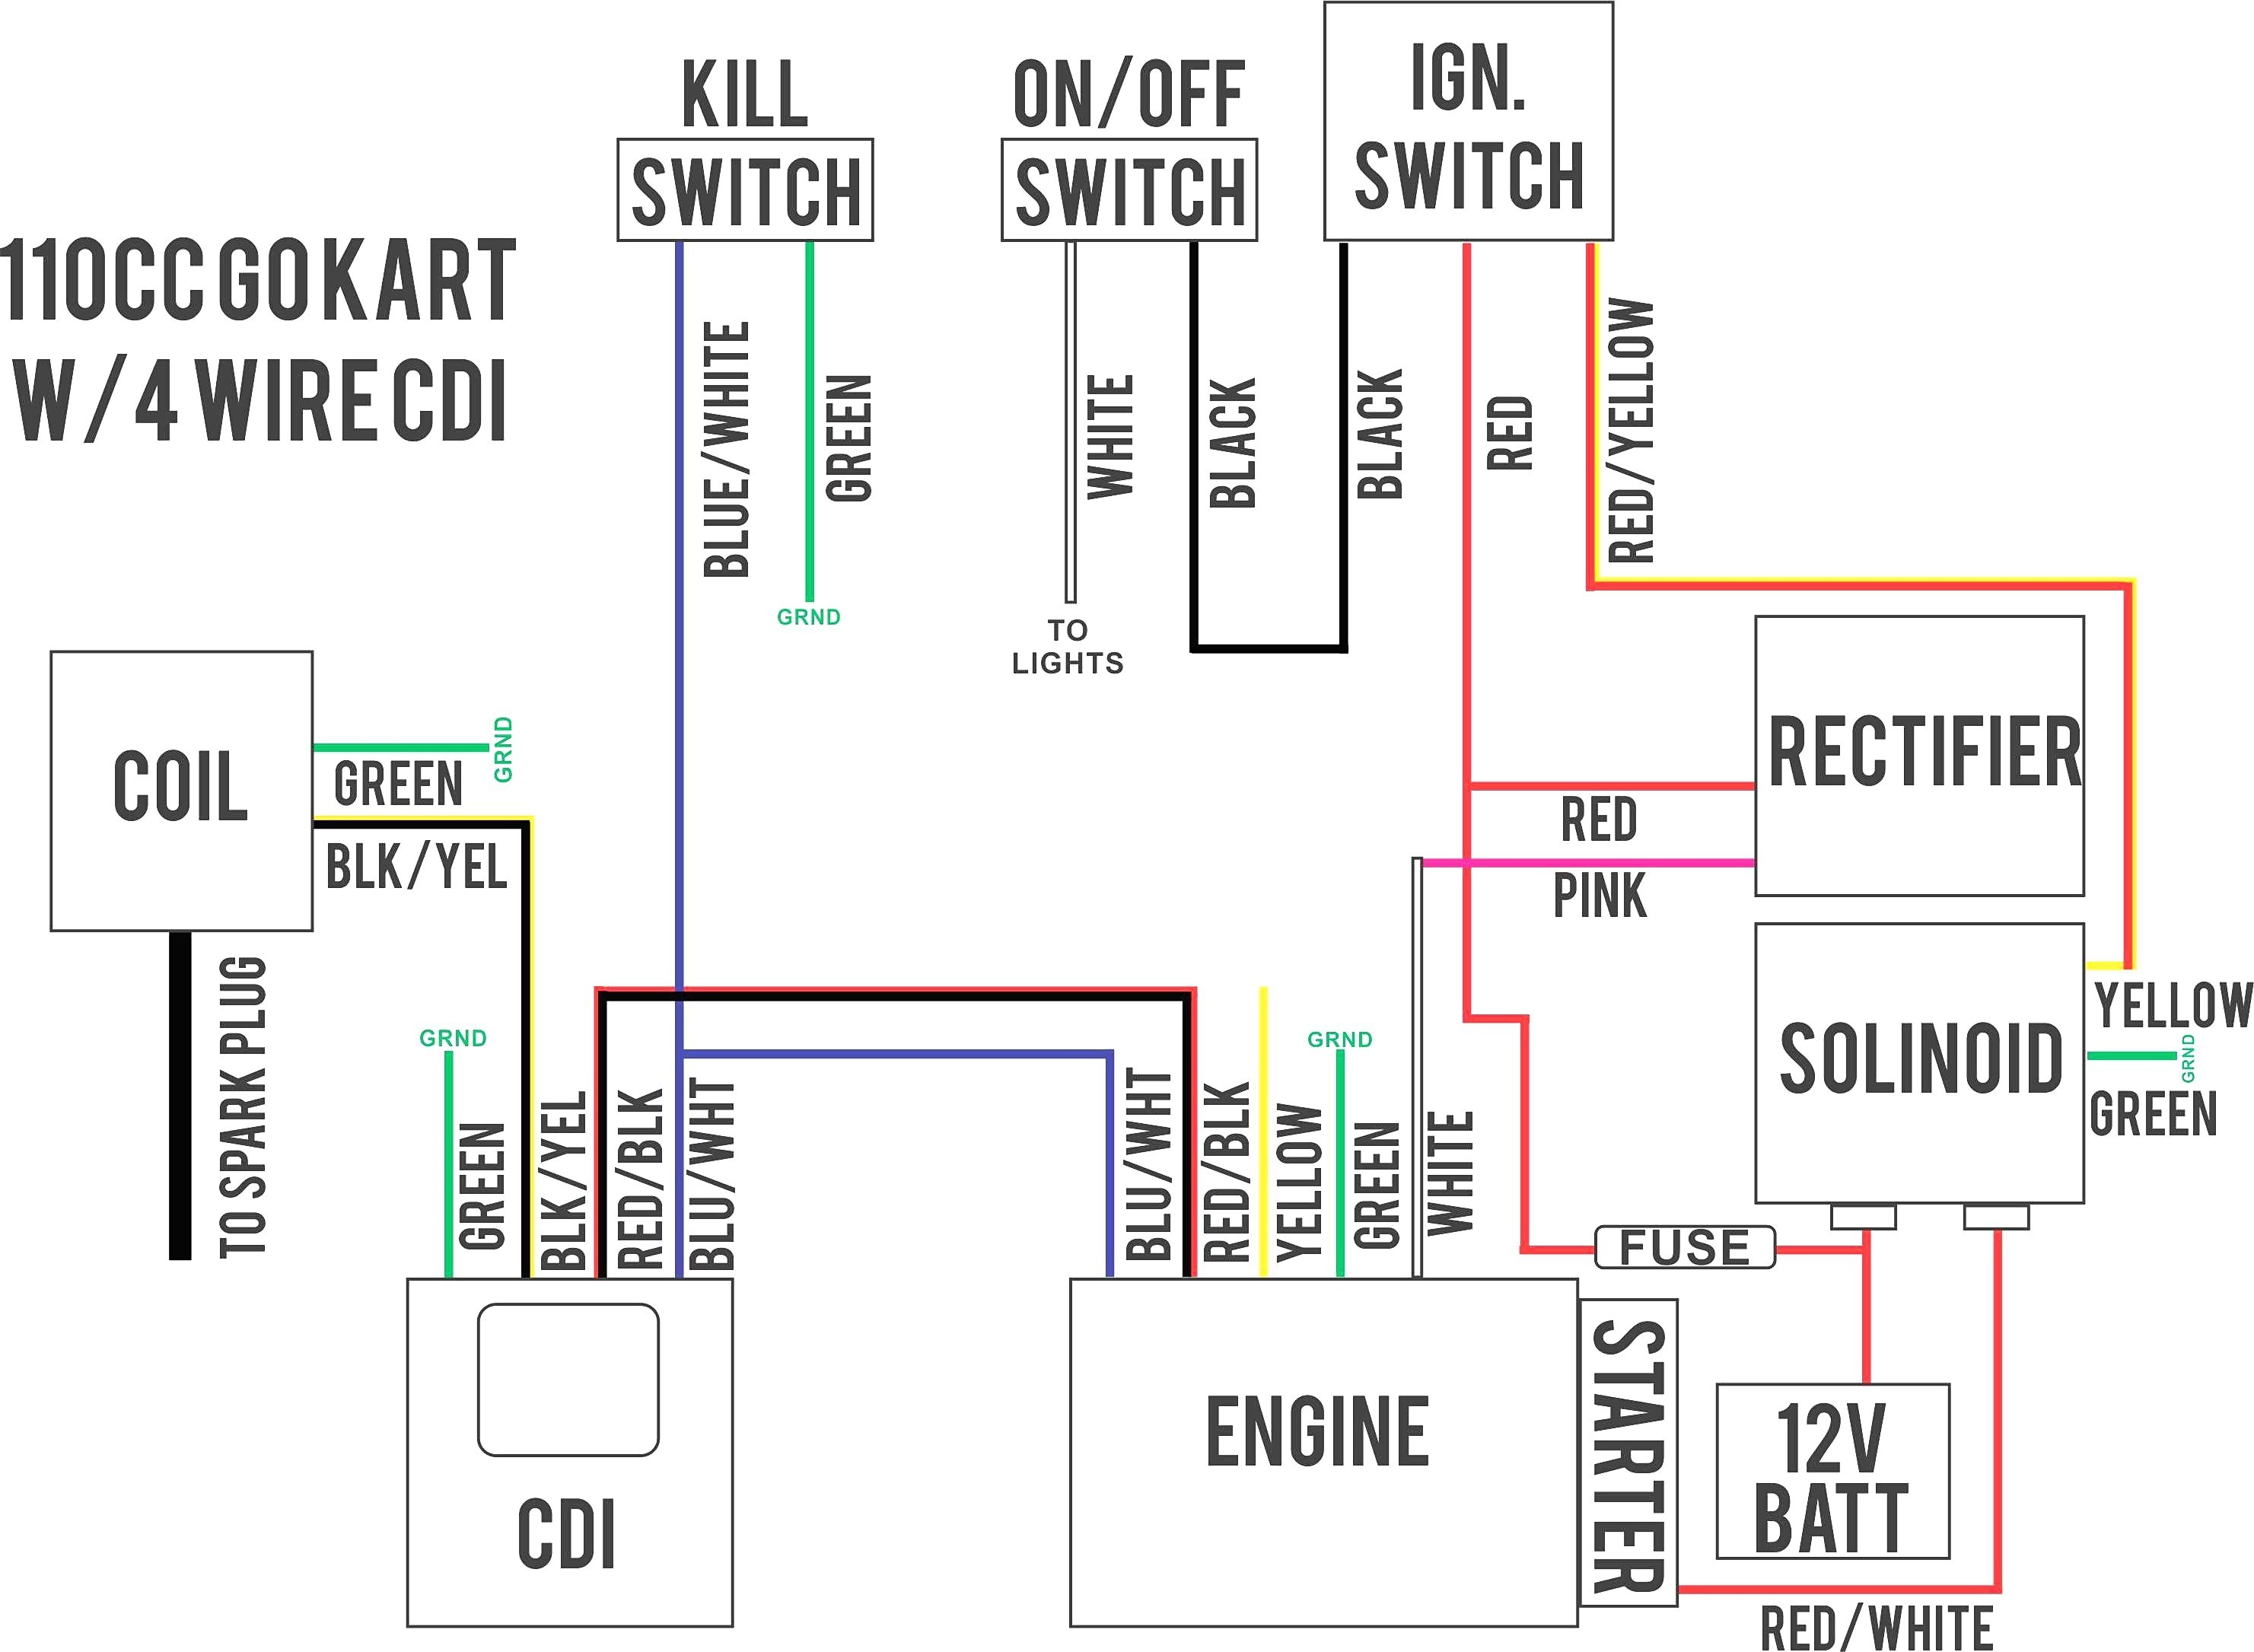 taotao 49cc scooter wiring diagram wiring library Ice Bear Scooter Wiring Diagram tao tao 150cc wiring diagram complete wiring diagrams \\u2022 tao tao 150cc atv schematic wiring